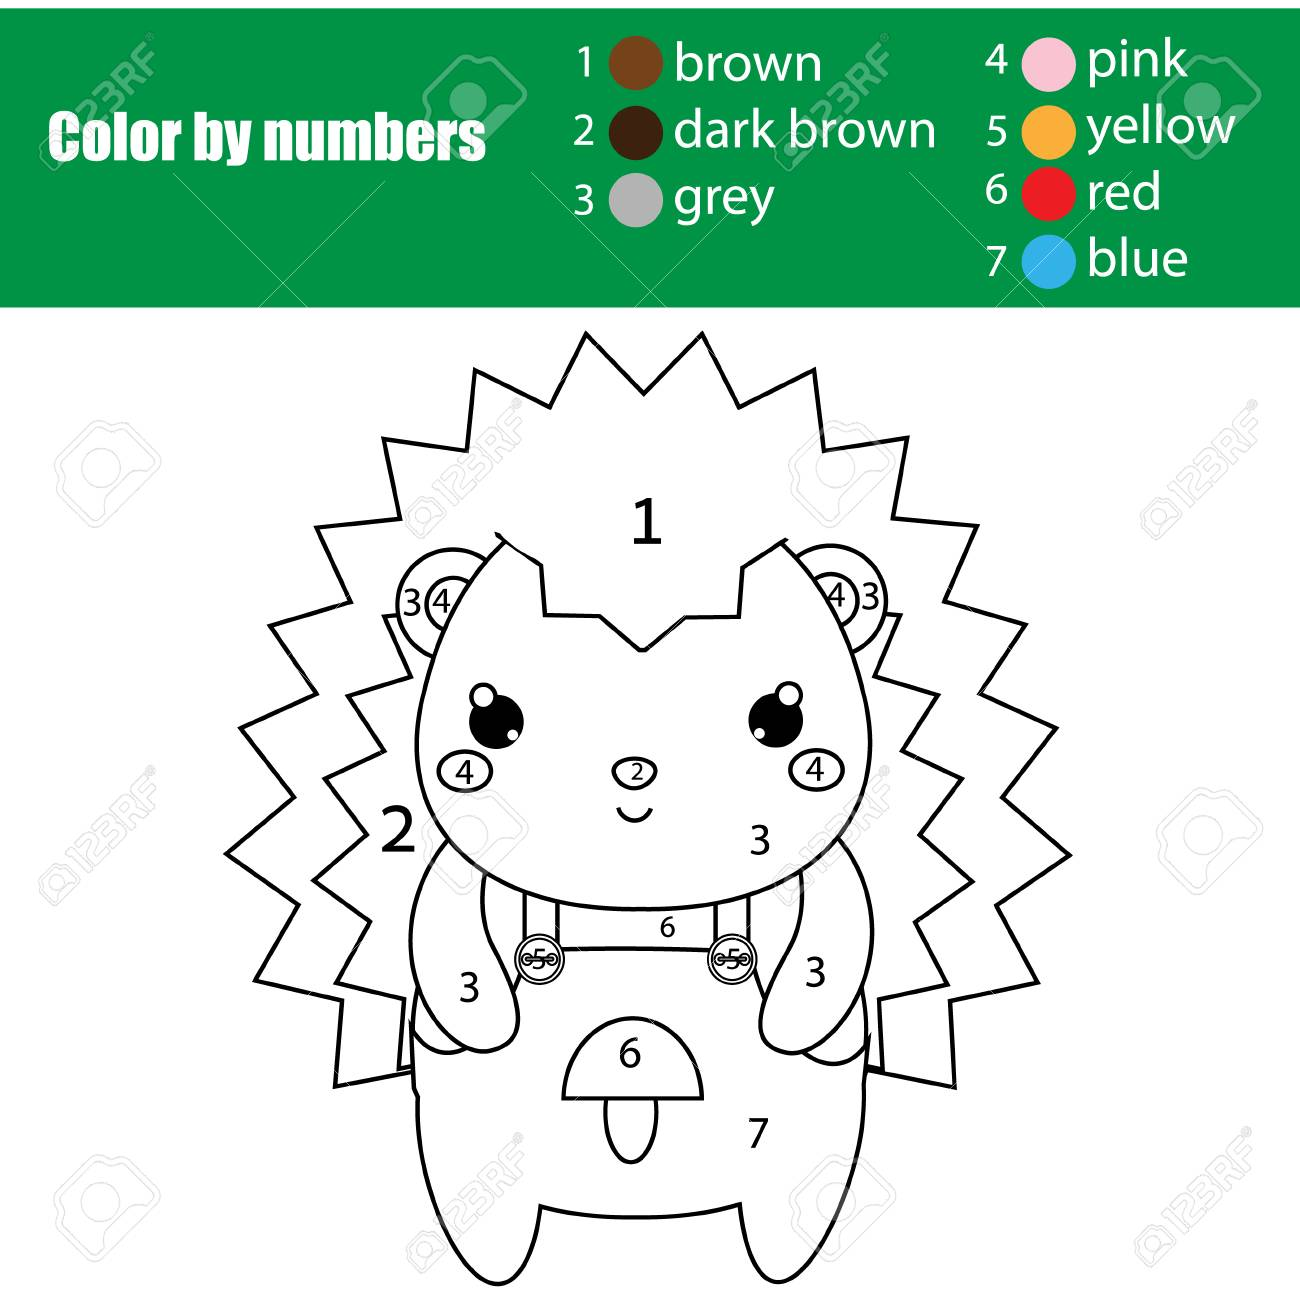 Coloring page with cute hedgehog color by numbers printable activity